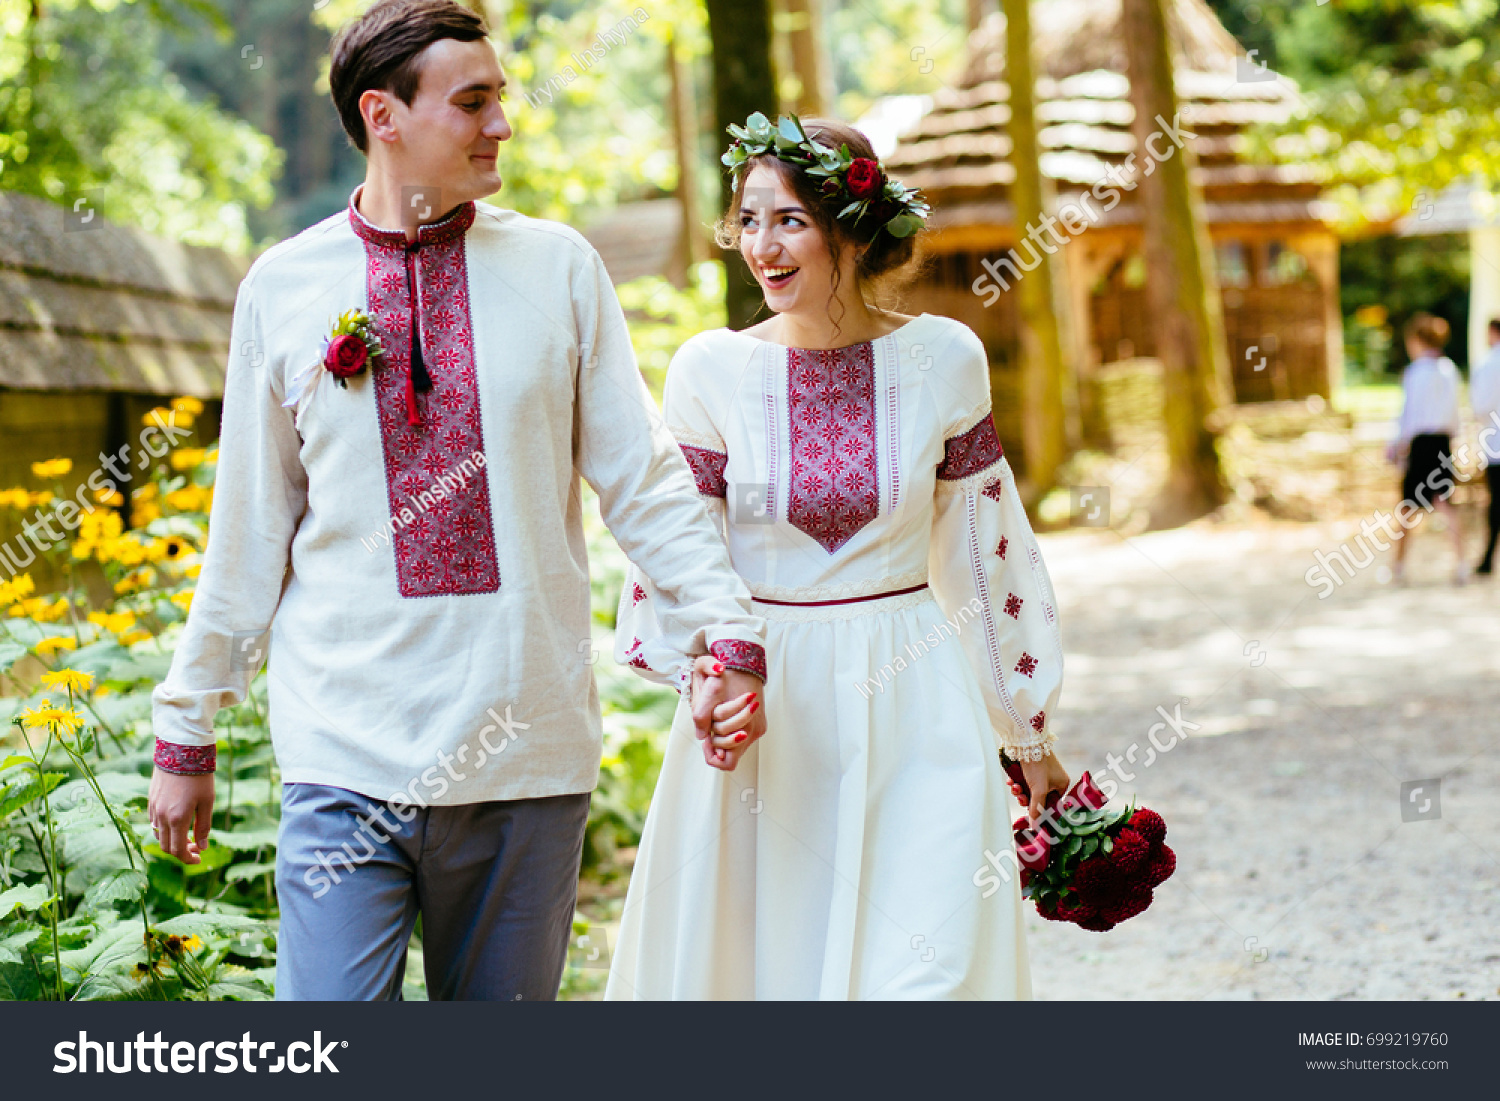 Beauty Wedding Couple Traditional Clothes Red Stock Photo 699219760